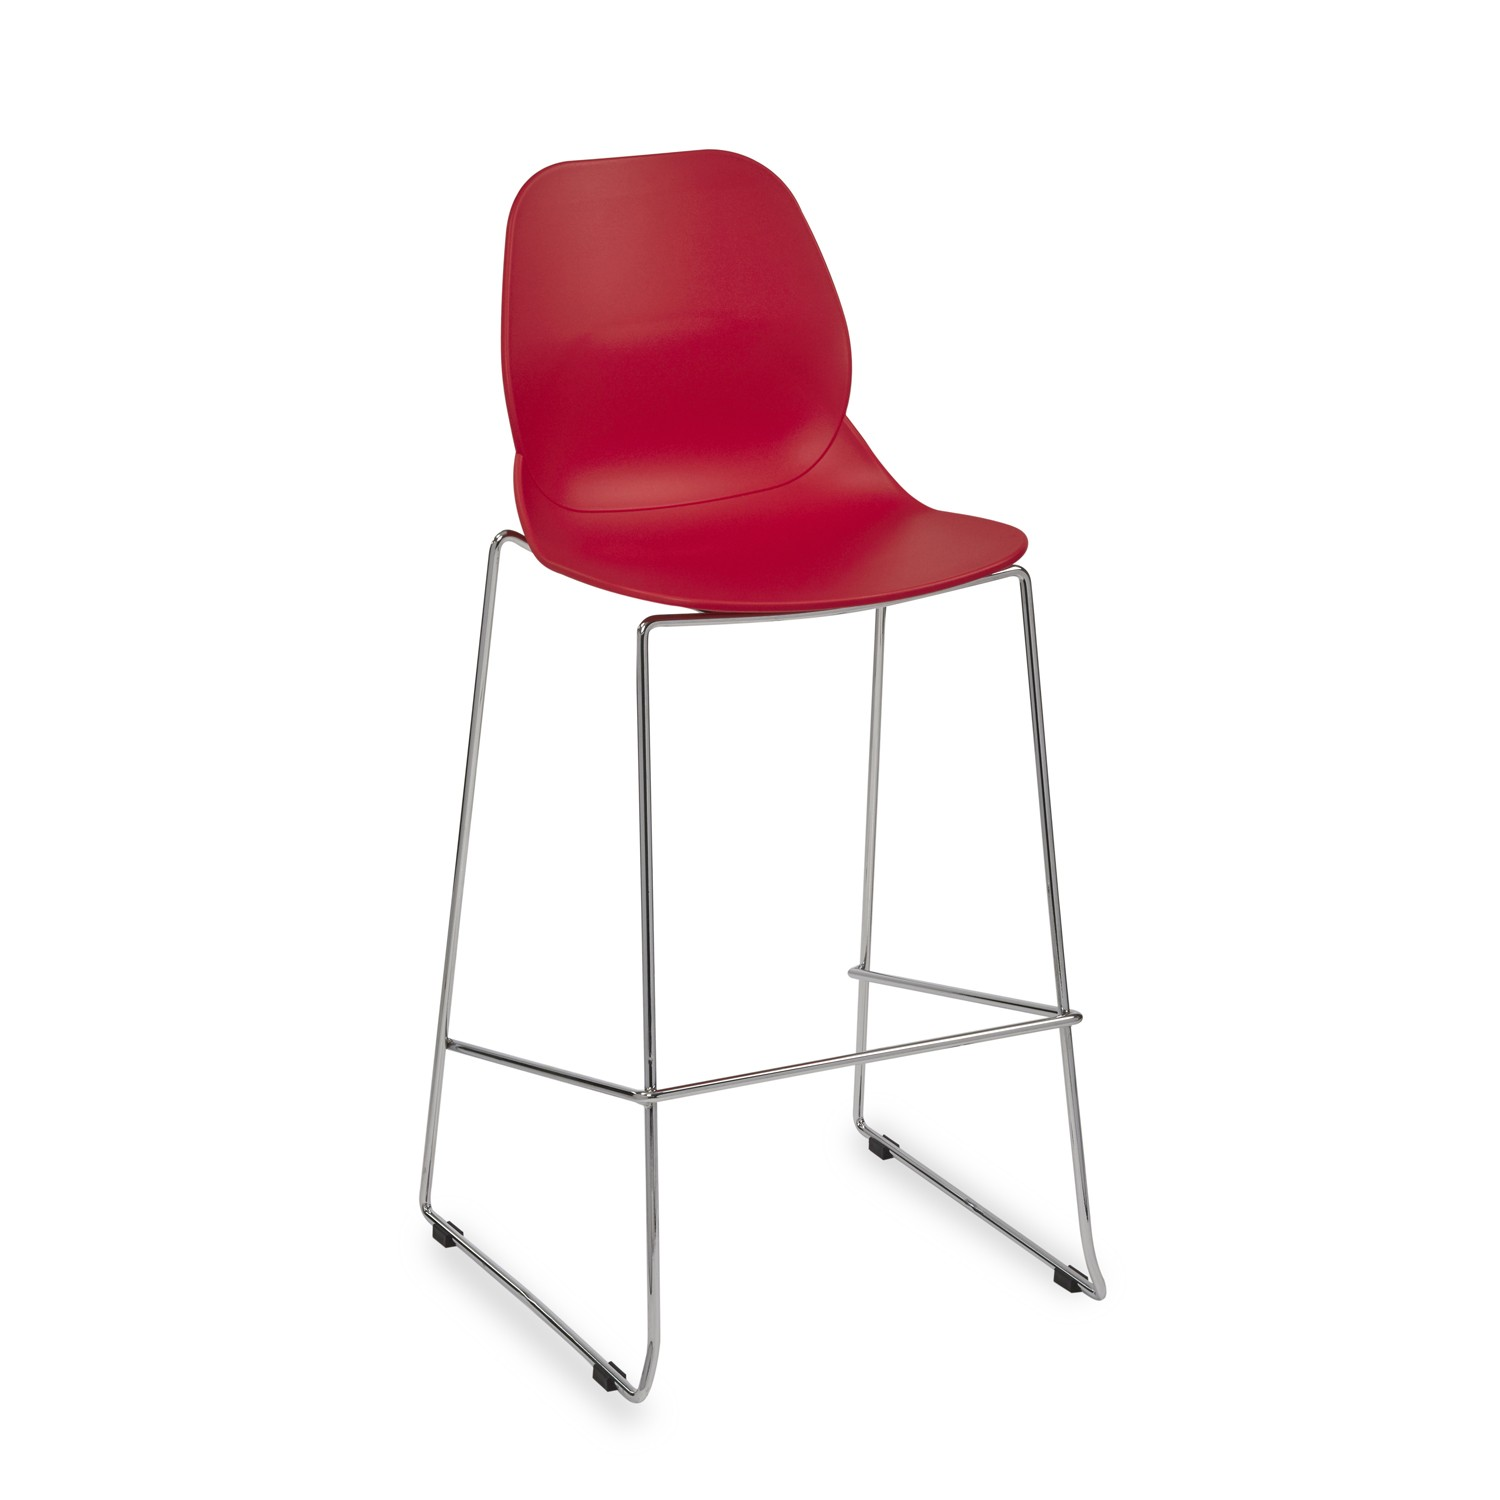 Lingwood Chair, High Stool